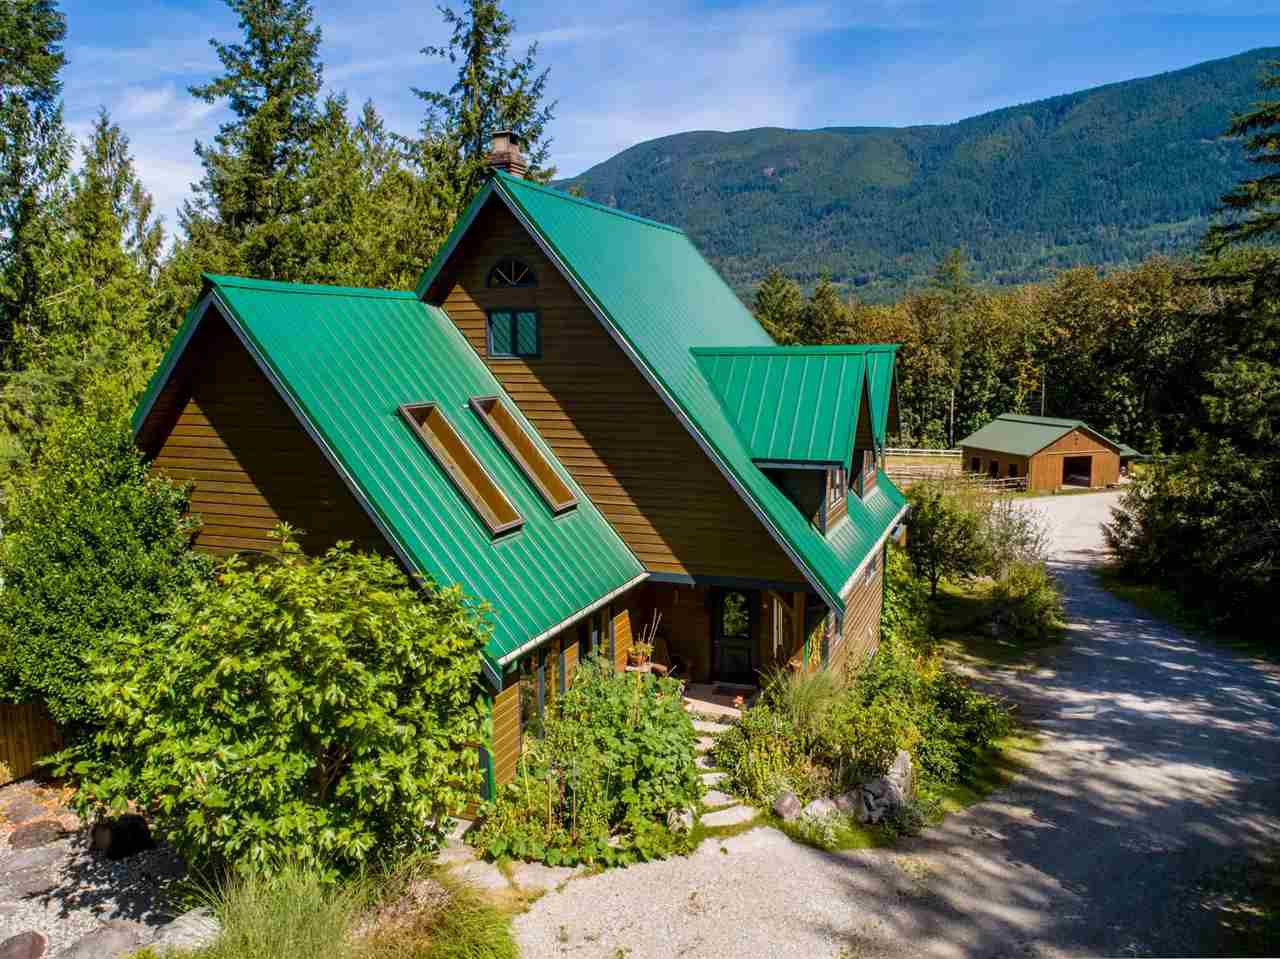 Main Photo: 5767 MT. DANIEL VIEW Road in Pender Harbour: Pender Harbour Egmont House for sale (Sunshine Coast)  : MLS®# R2493304